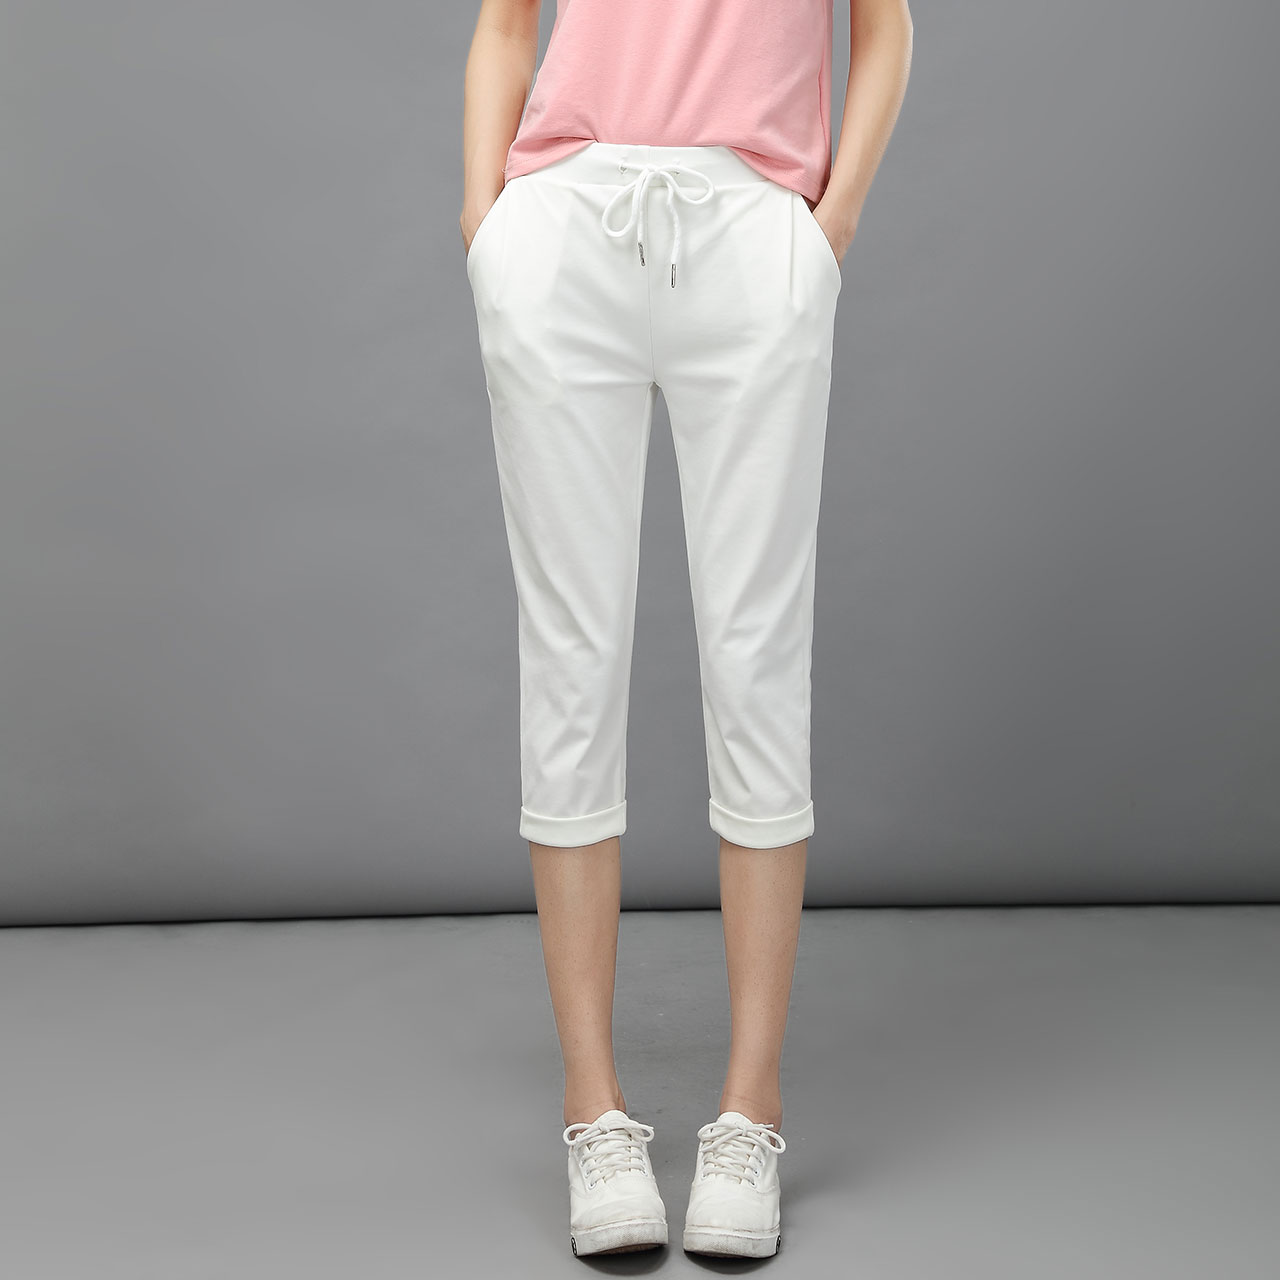 Lt white pants harem pant female summer thin korean version of casual shorts loose elastic waist pants feet was thin